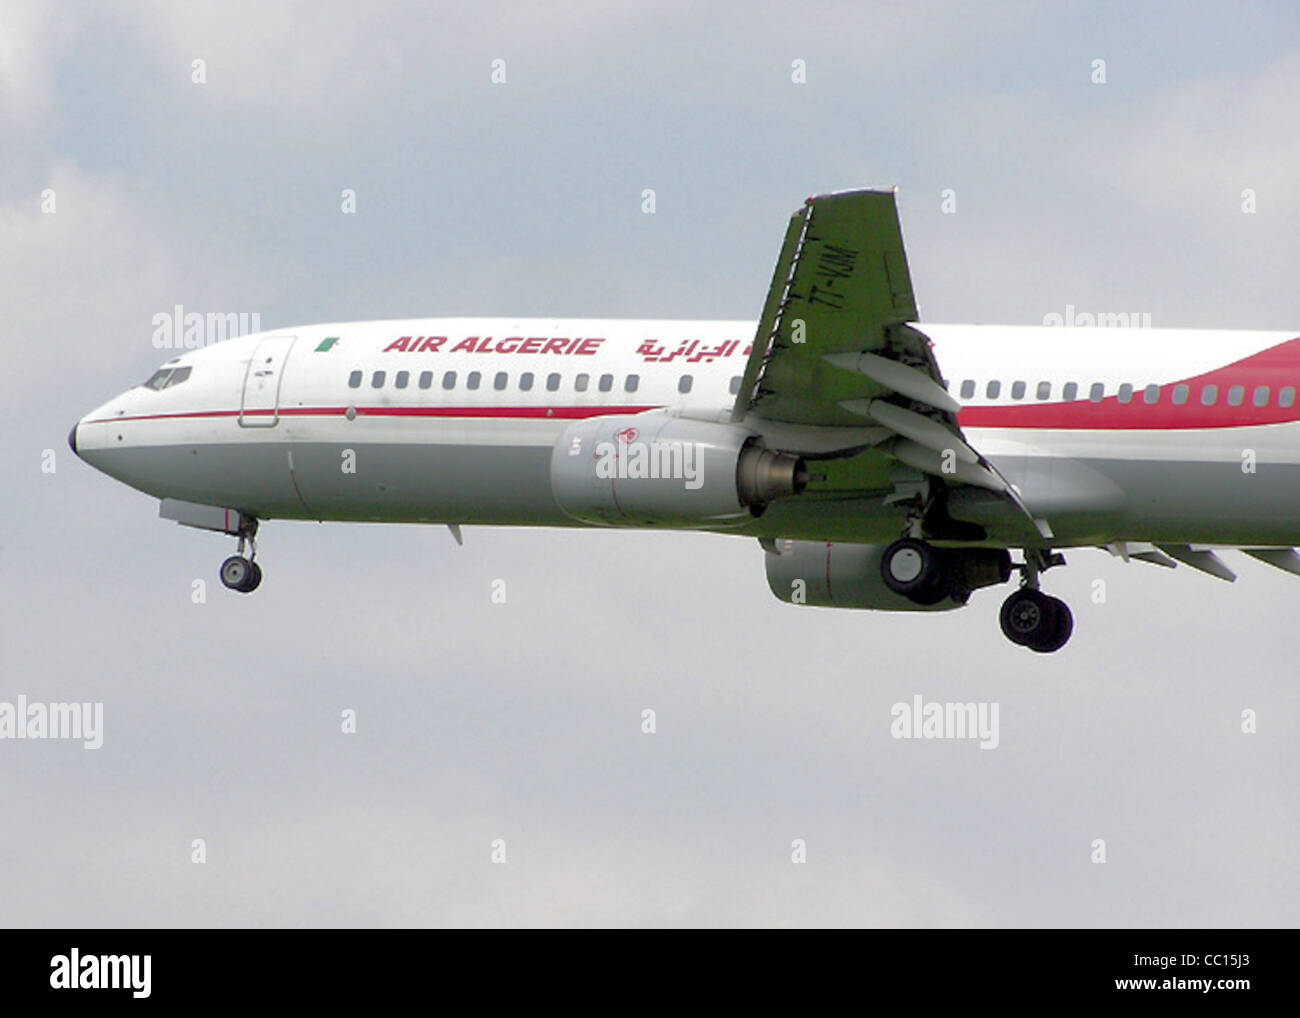 Air Algerie Boeing 737-800 (7T-VJM) landing at London (Heathrow) airport. - Stock Image